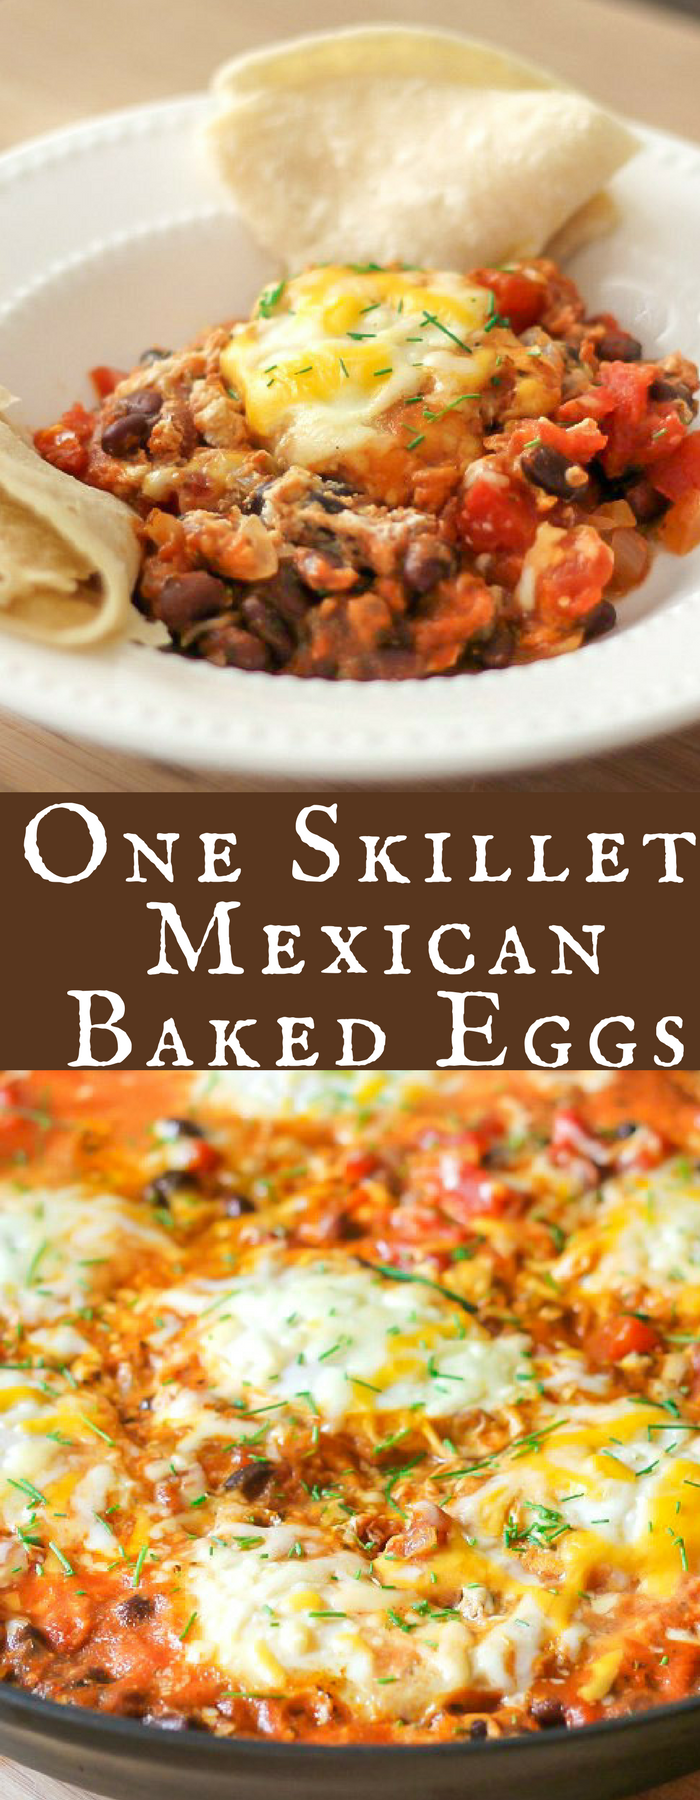 Mexican Baked Eggs are cooked in one skillet and make a delicious breakfast or dinner! Low calorie and high protein, it's the perfect healthy meal.